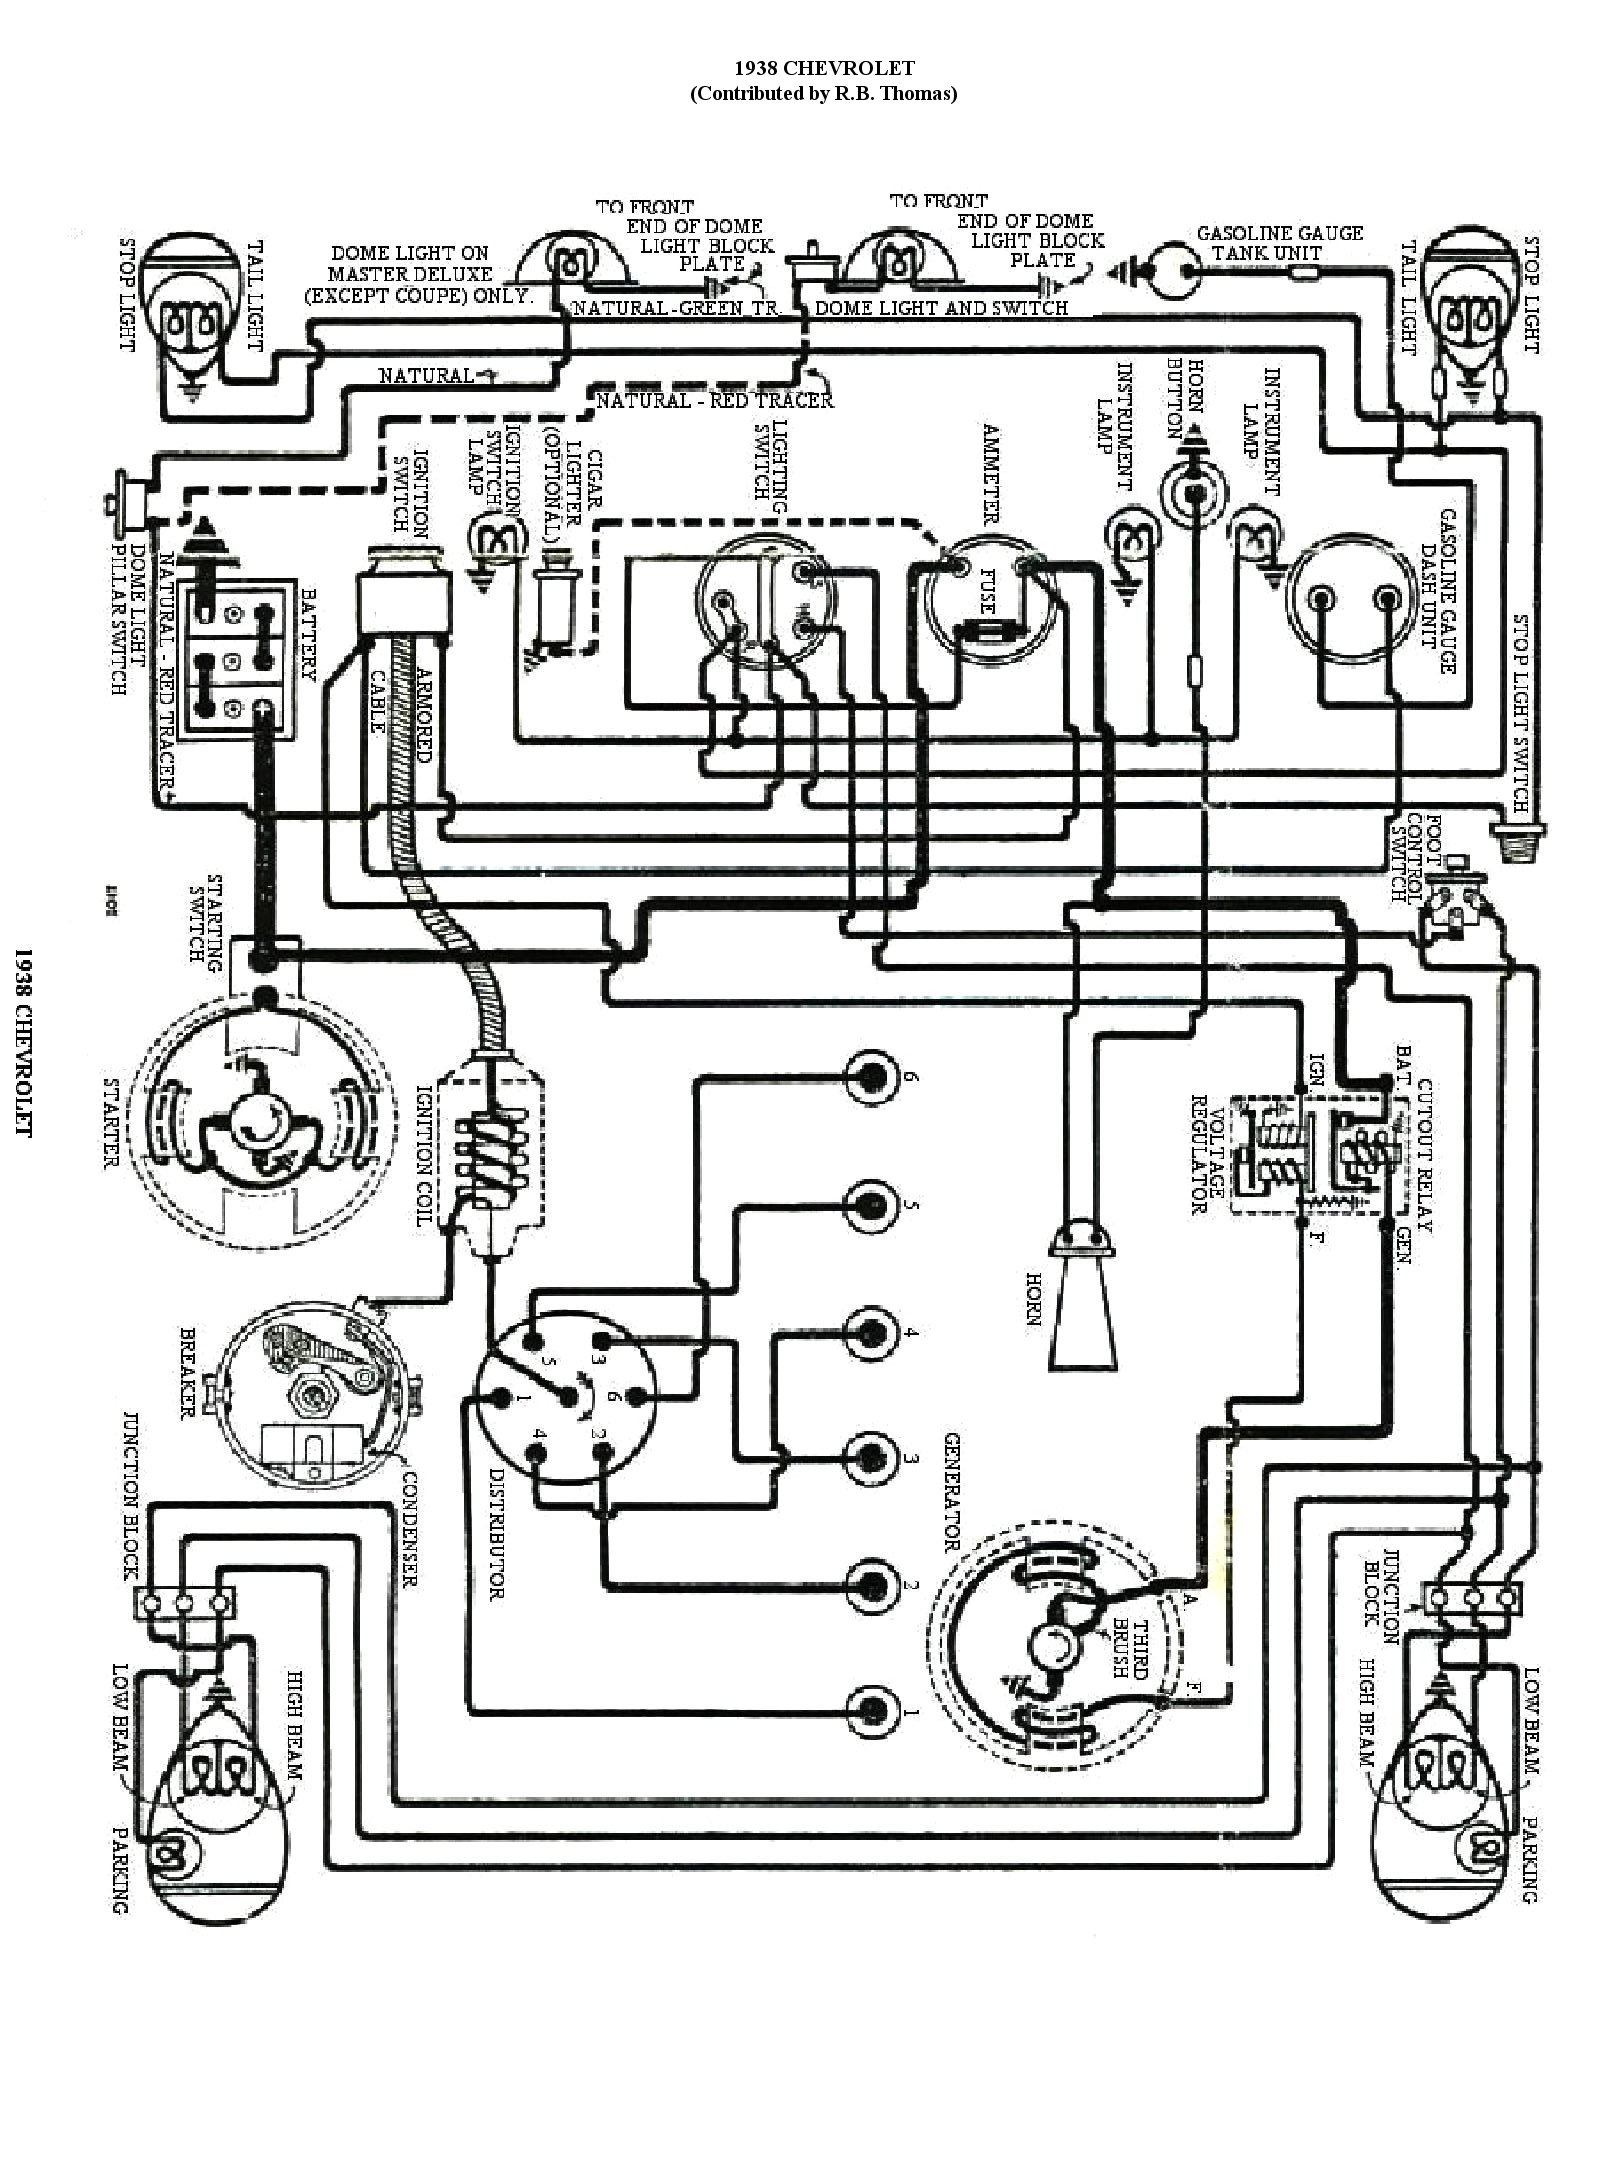 hight resolution of 1938 wiring chevy wiring diagrams